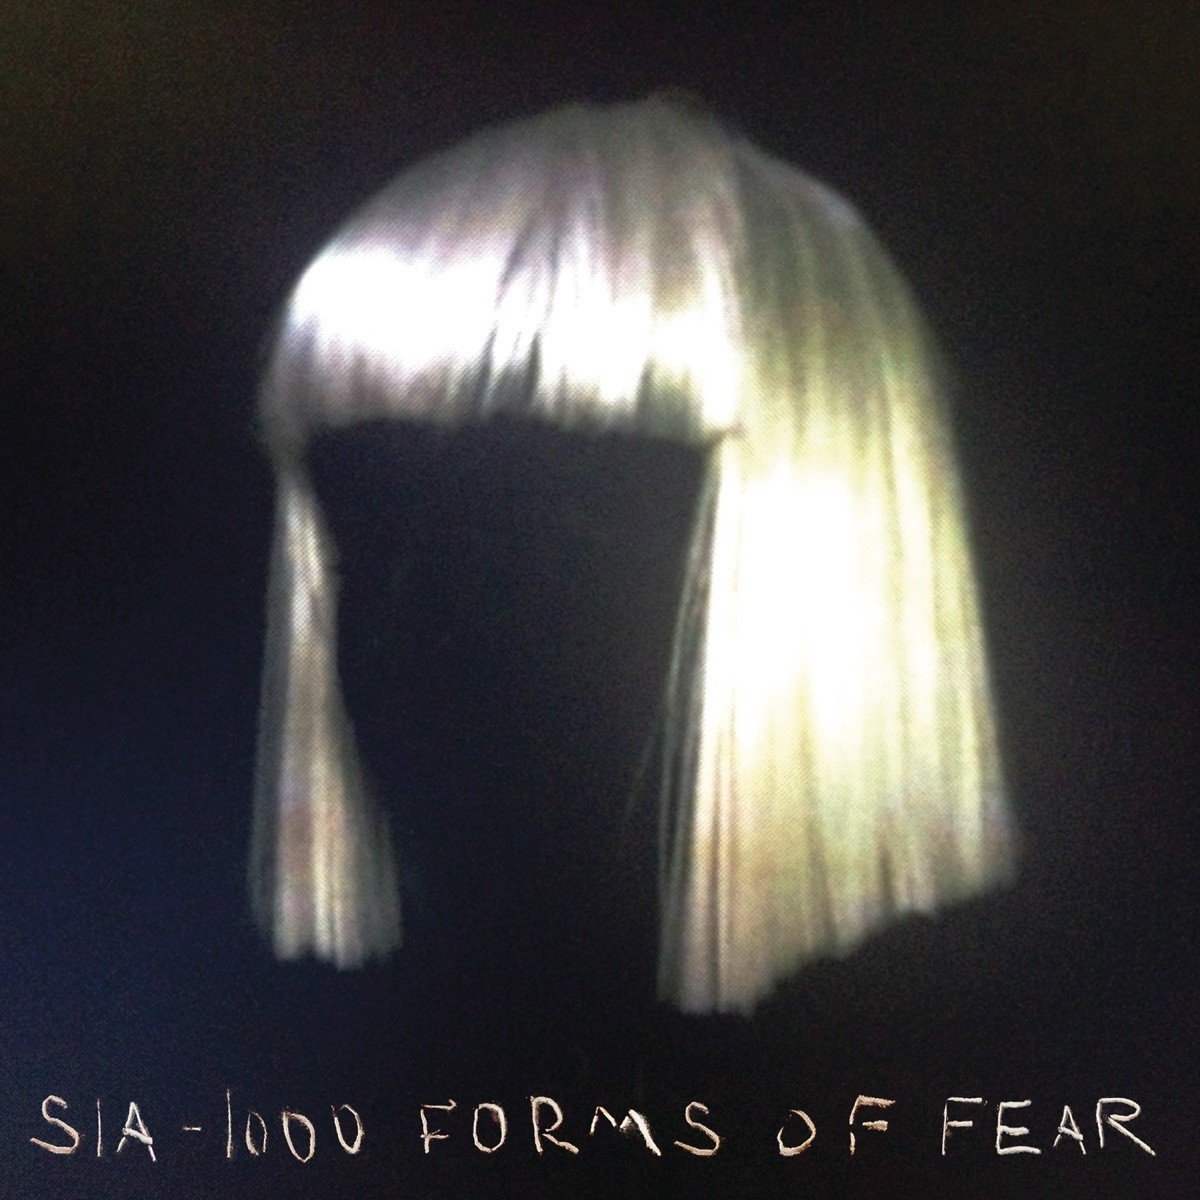 Sia - 1000 Forms Of Fear VINYL - 0888430740419